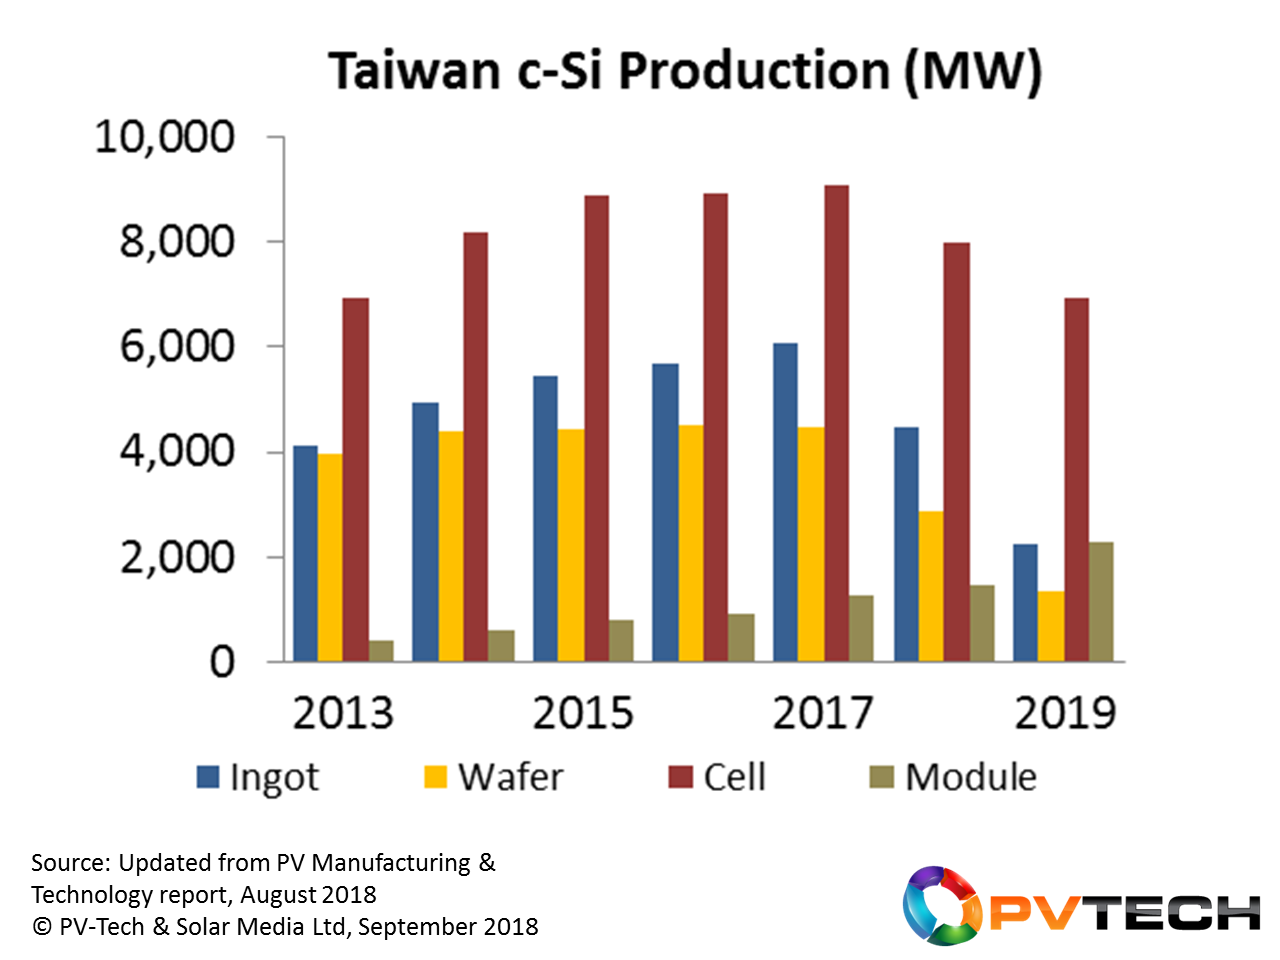 Production of PV ingots to modules in Taiwan was previously epitomized by increasing production during the 2013 to 2017 period, with minimal new capacity additions. From 2018 onwards, cell production will decrease, with module production being the only growth segment of the value-chain.